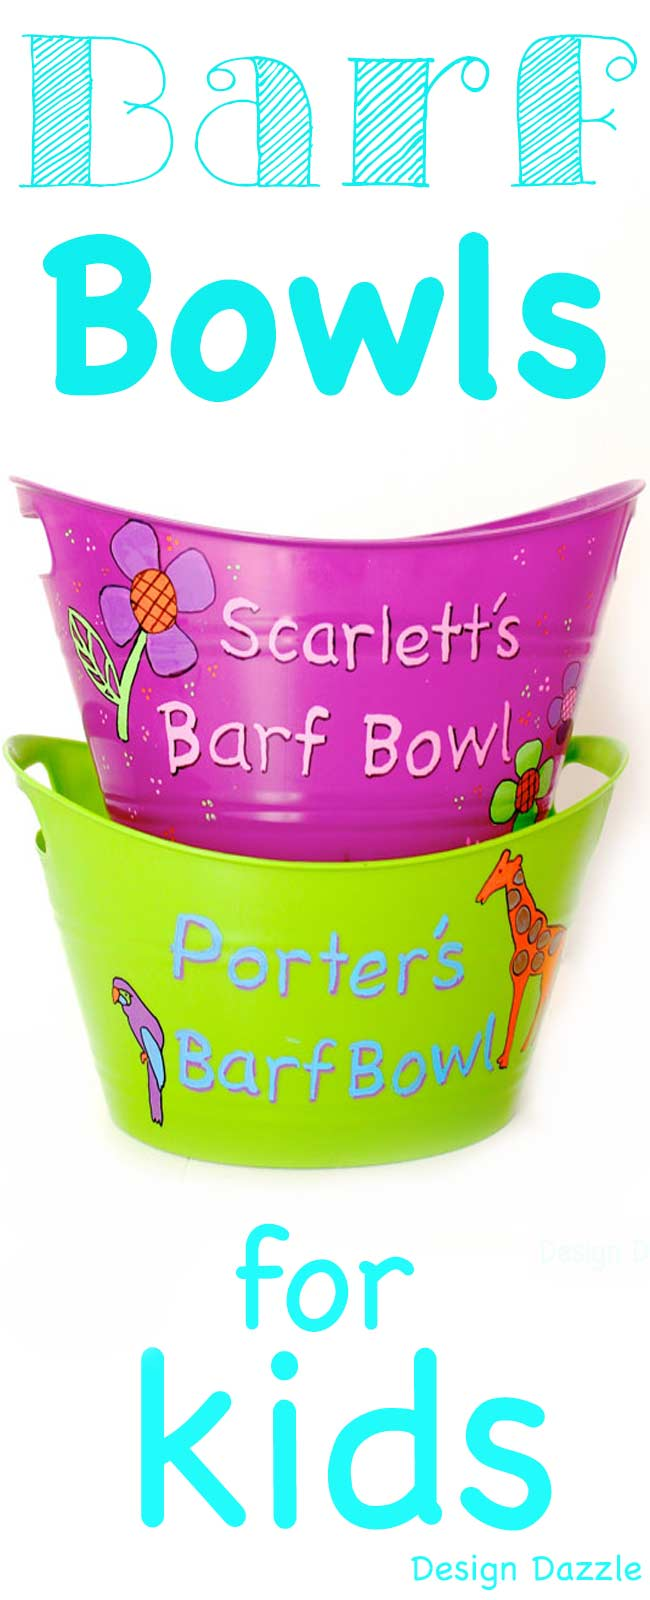 Barf Bowls for Kids! Colorful, bright and personalized bowls can help when your littles get sick. Design Dazzle